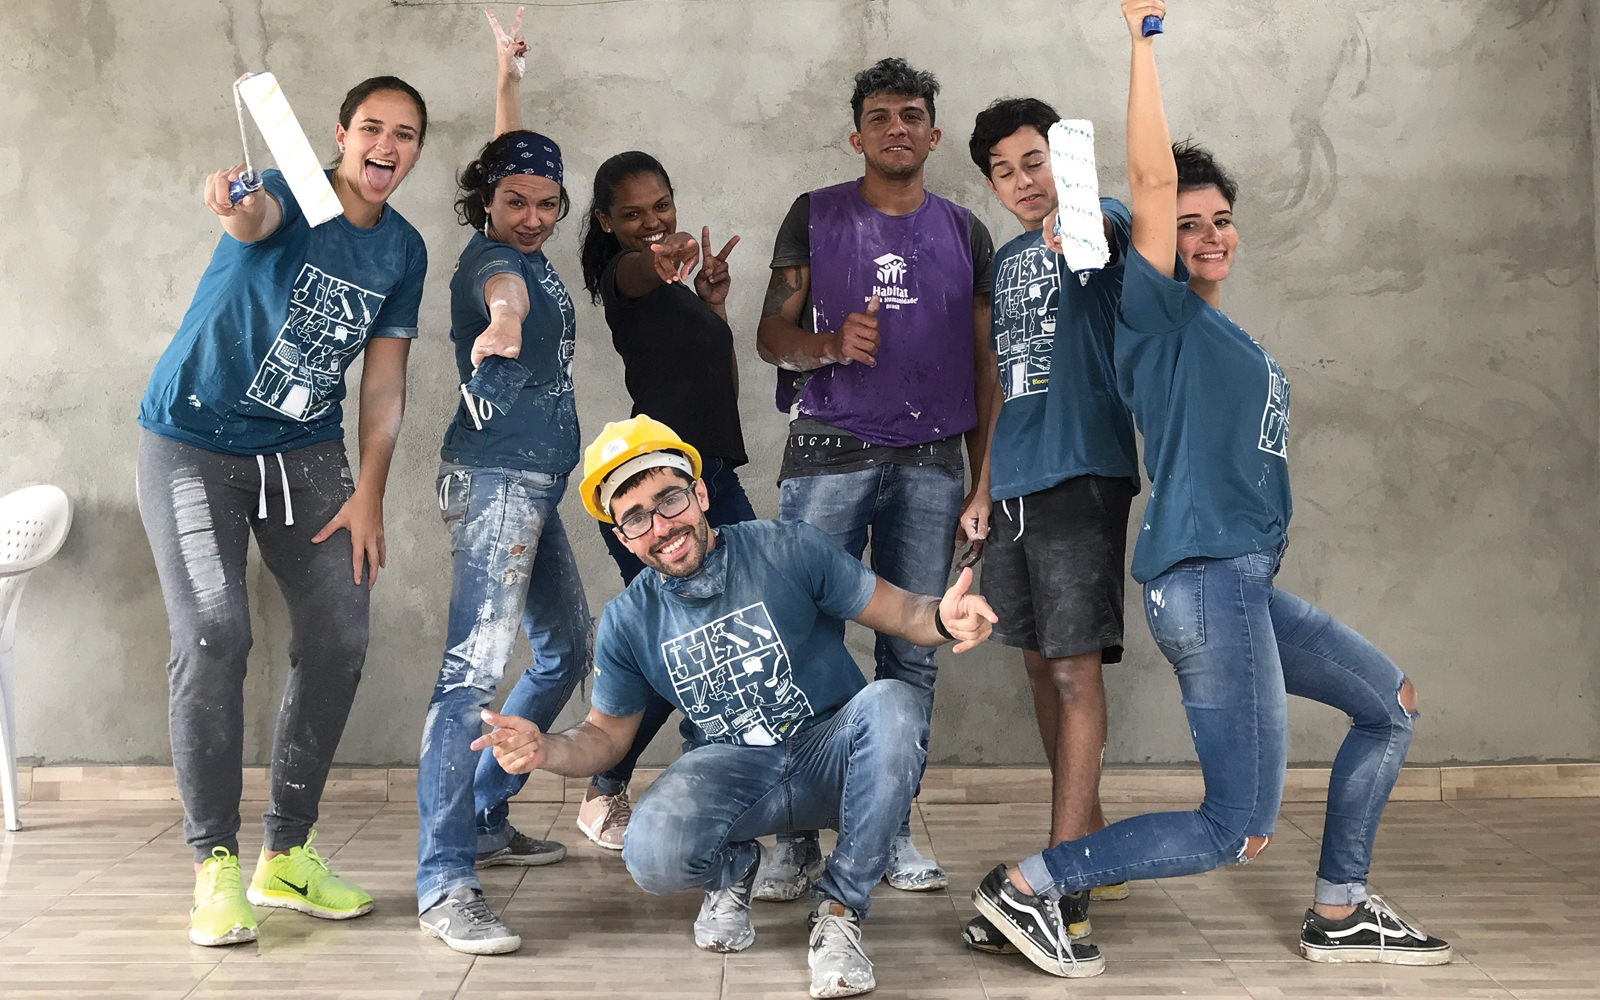 Bloomberg L.P. volunteers in São Paulo, Brazil, help paint a project with Habitat for Humanity organizers.